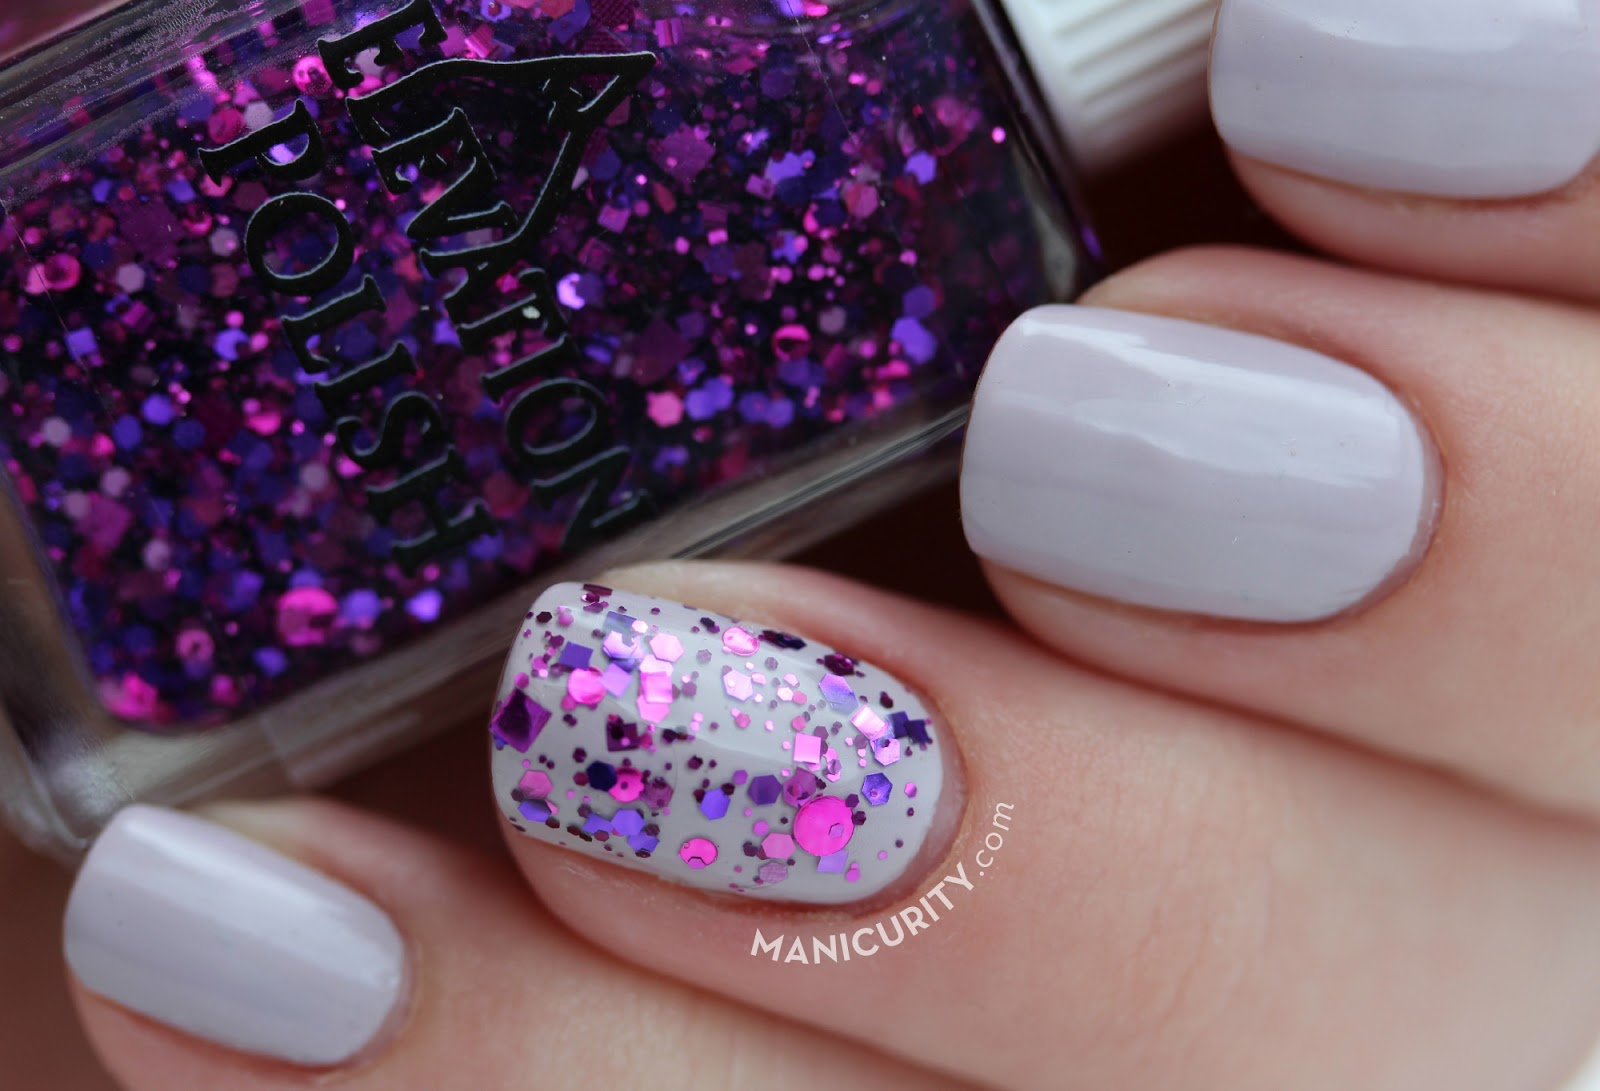 classic-glitter-accent-mani-china-glaze-sweet-as-air-with-elevation-polish-pata-puffer-ii-nails-nail-art-diy-simple-nail-ideas3